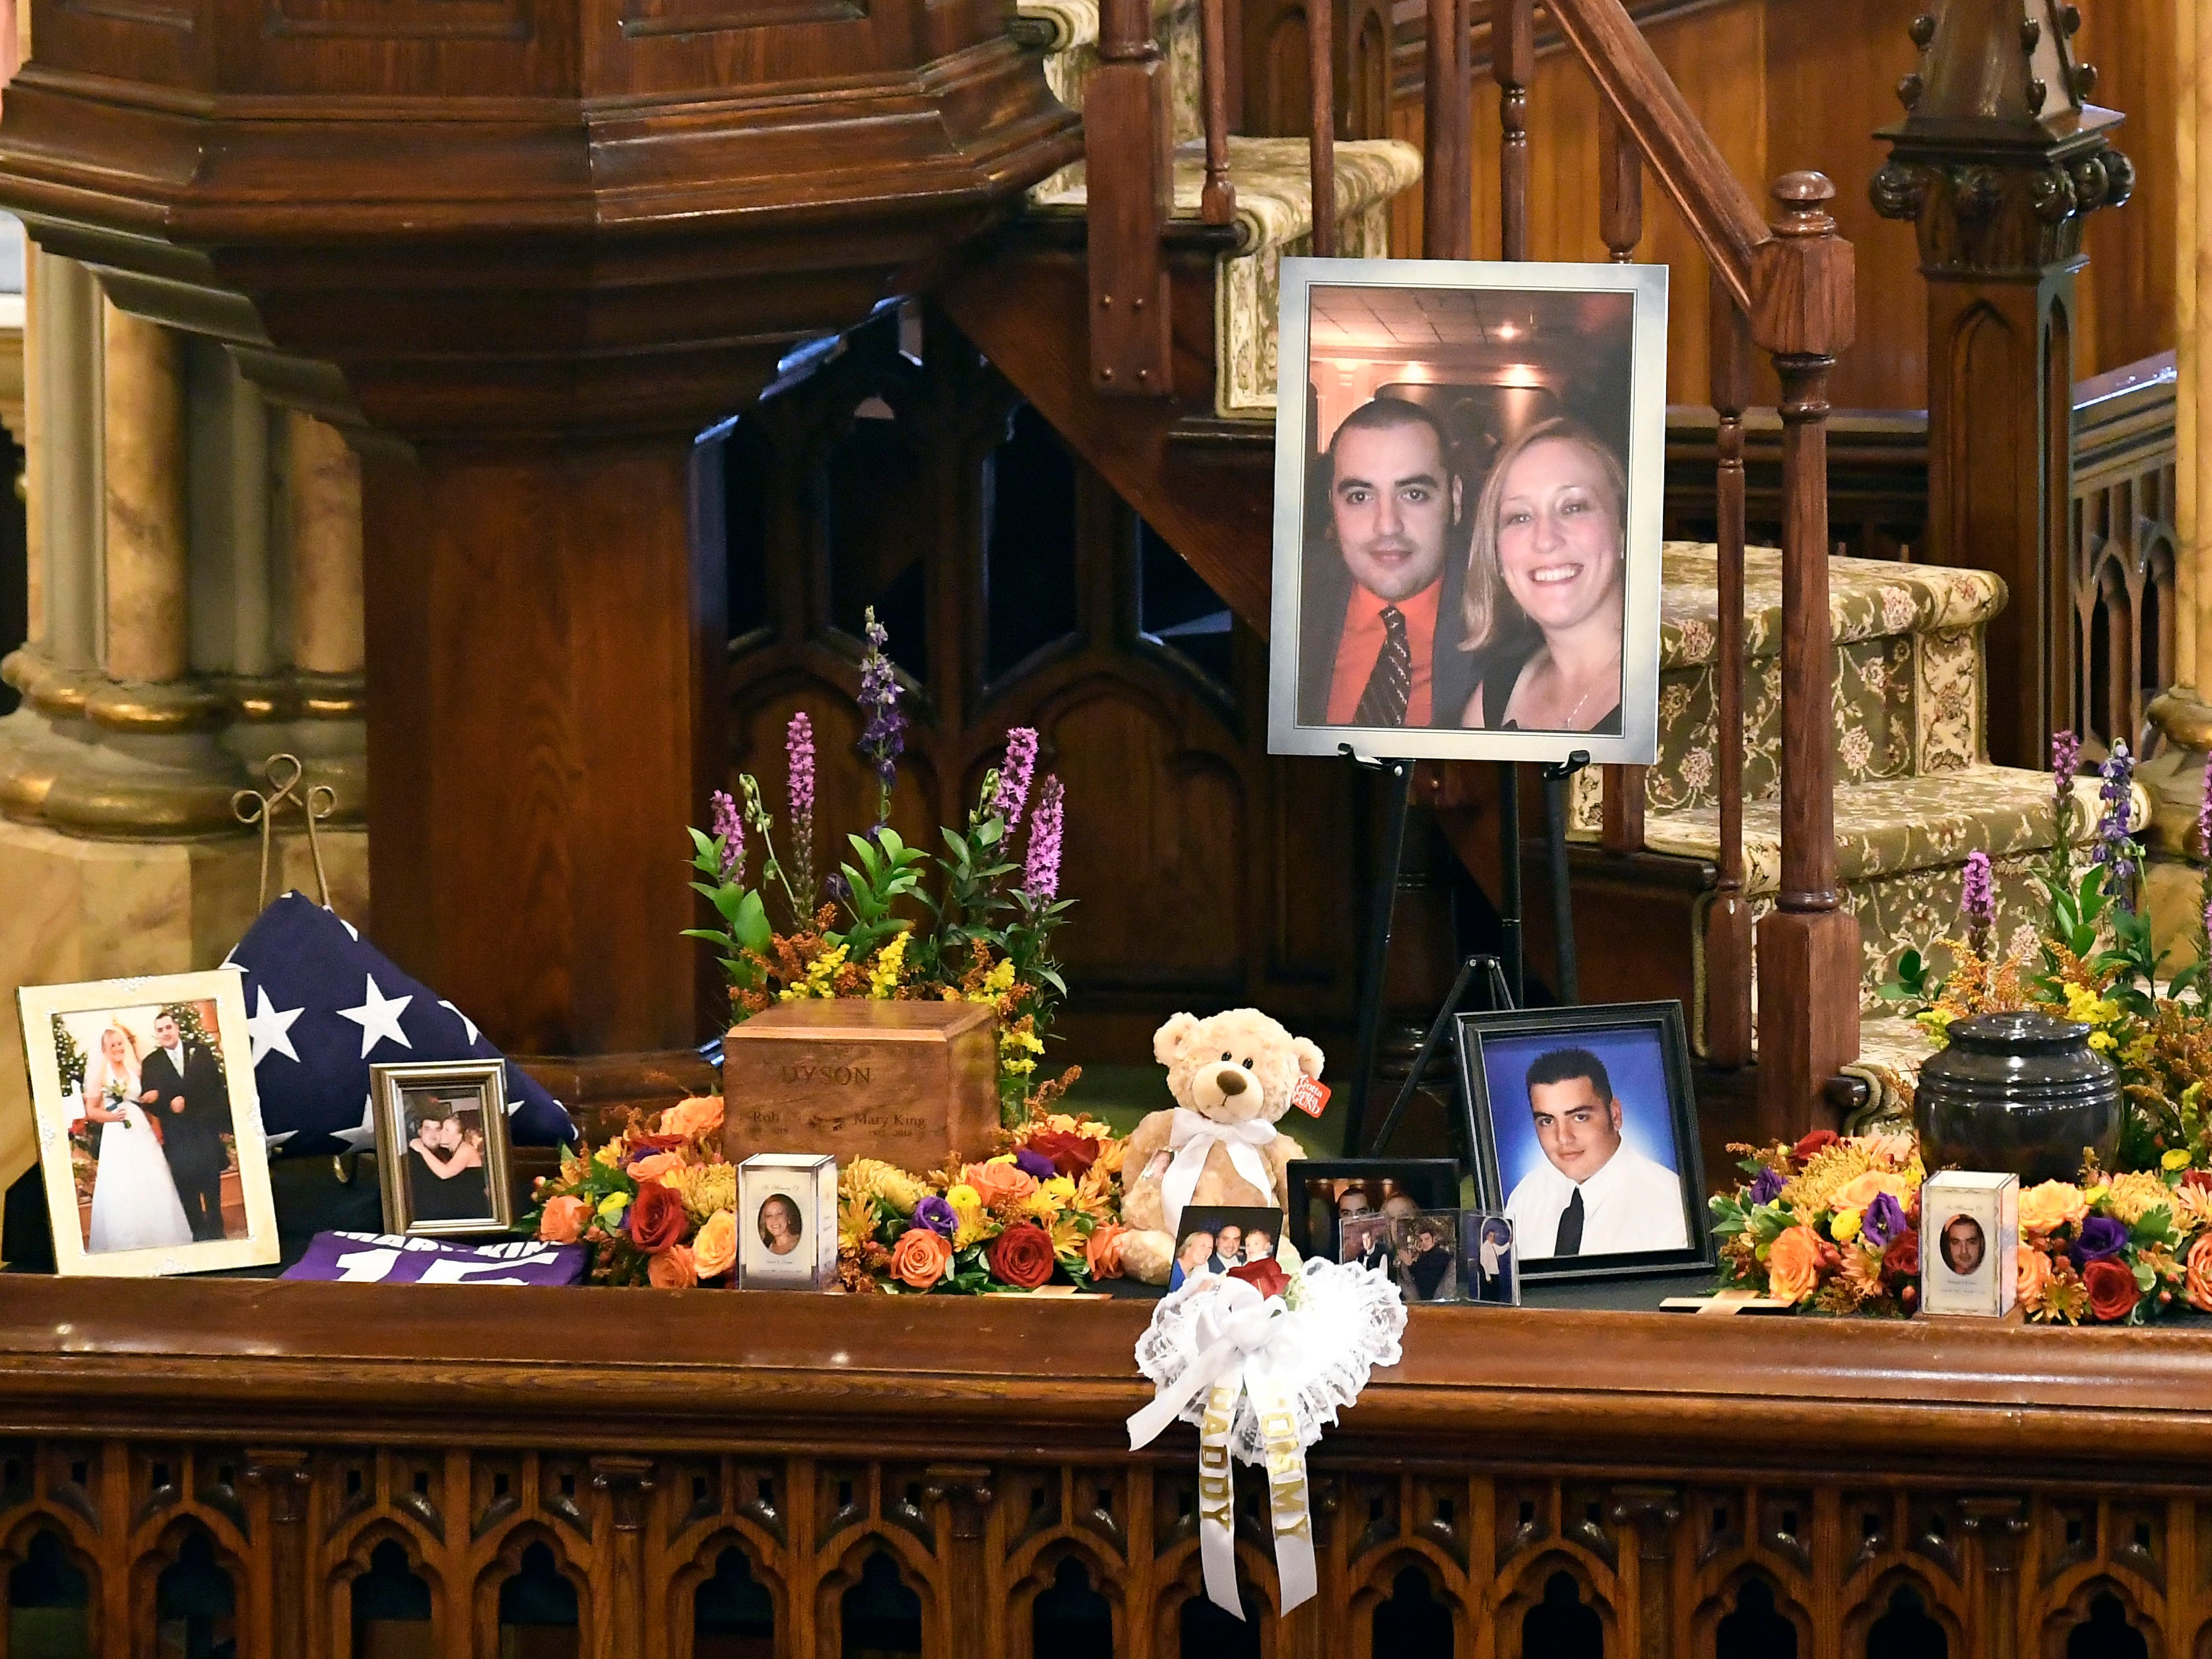 A unity urn with cremated ashes of Robert Joseph Dyson and Mary E. Dyson is set in place as friends and family prepare for a funeral mass at St. Stanislaus Roman Catholic Church in Amsterdam, N.Y., for eight of the 20 people killed in last Saturday's fatal limousine crash in Schoharie, N.Y., Saturday, Oct. 13, 2018. (AP Photo/Hans Pennink)